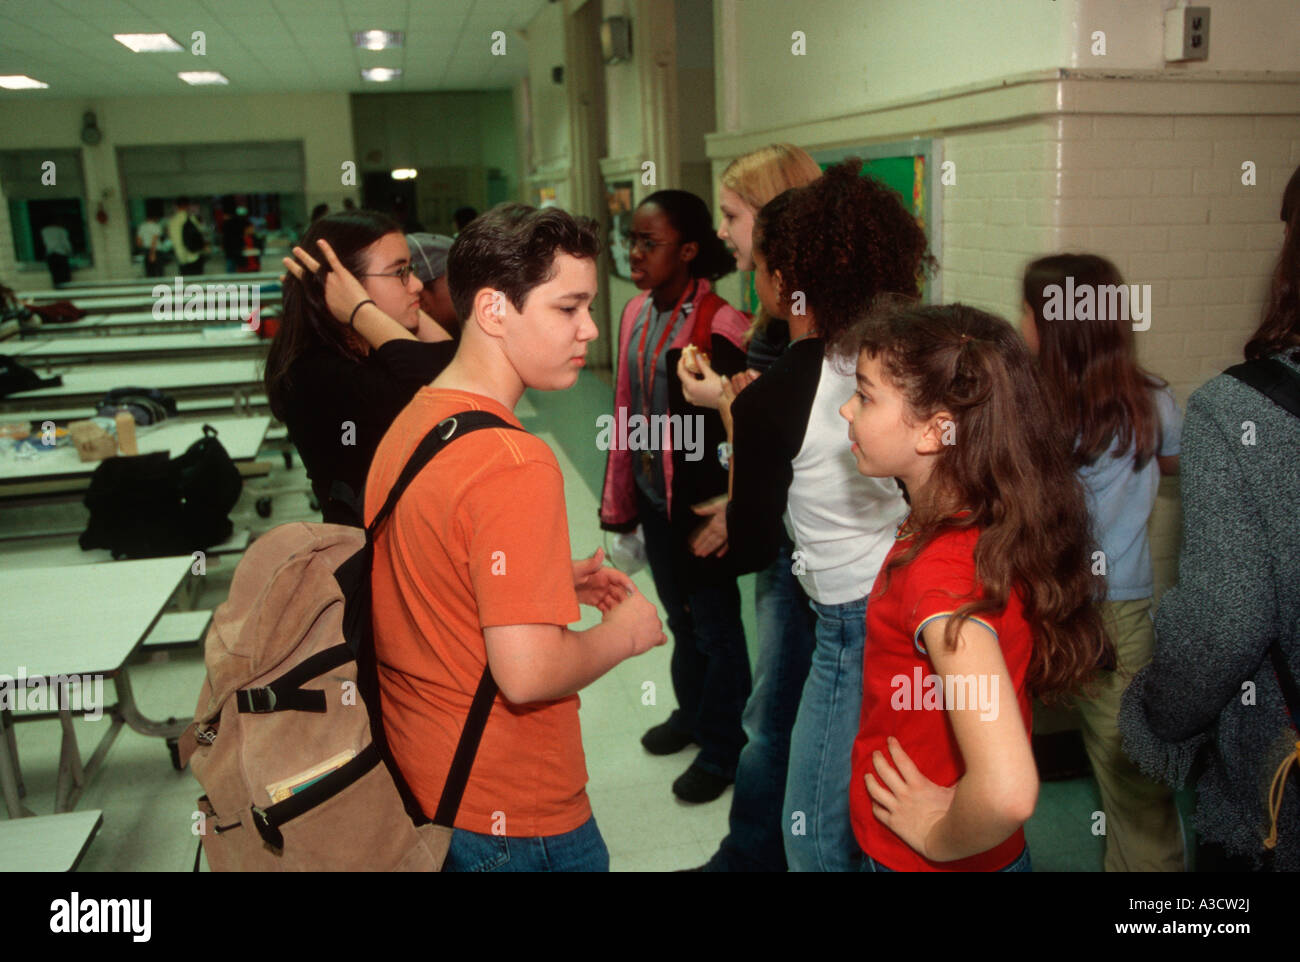 the lunch room is a place where students socialize at school stock photo the lunch room is a place where students socialize at school junior high school new york city